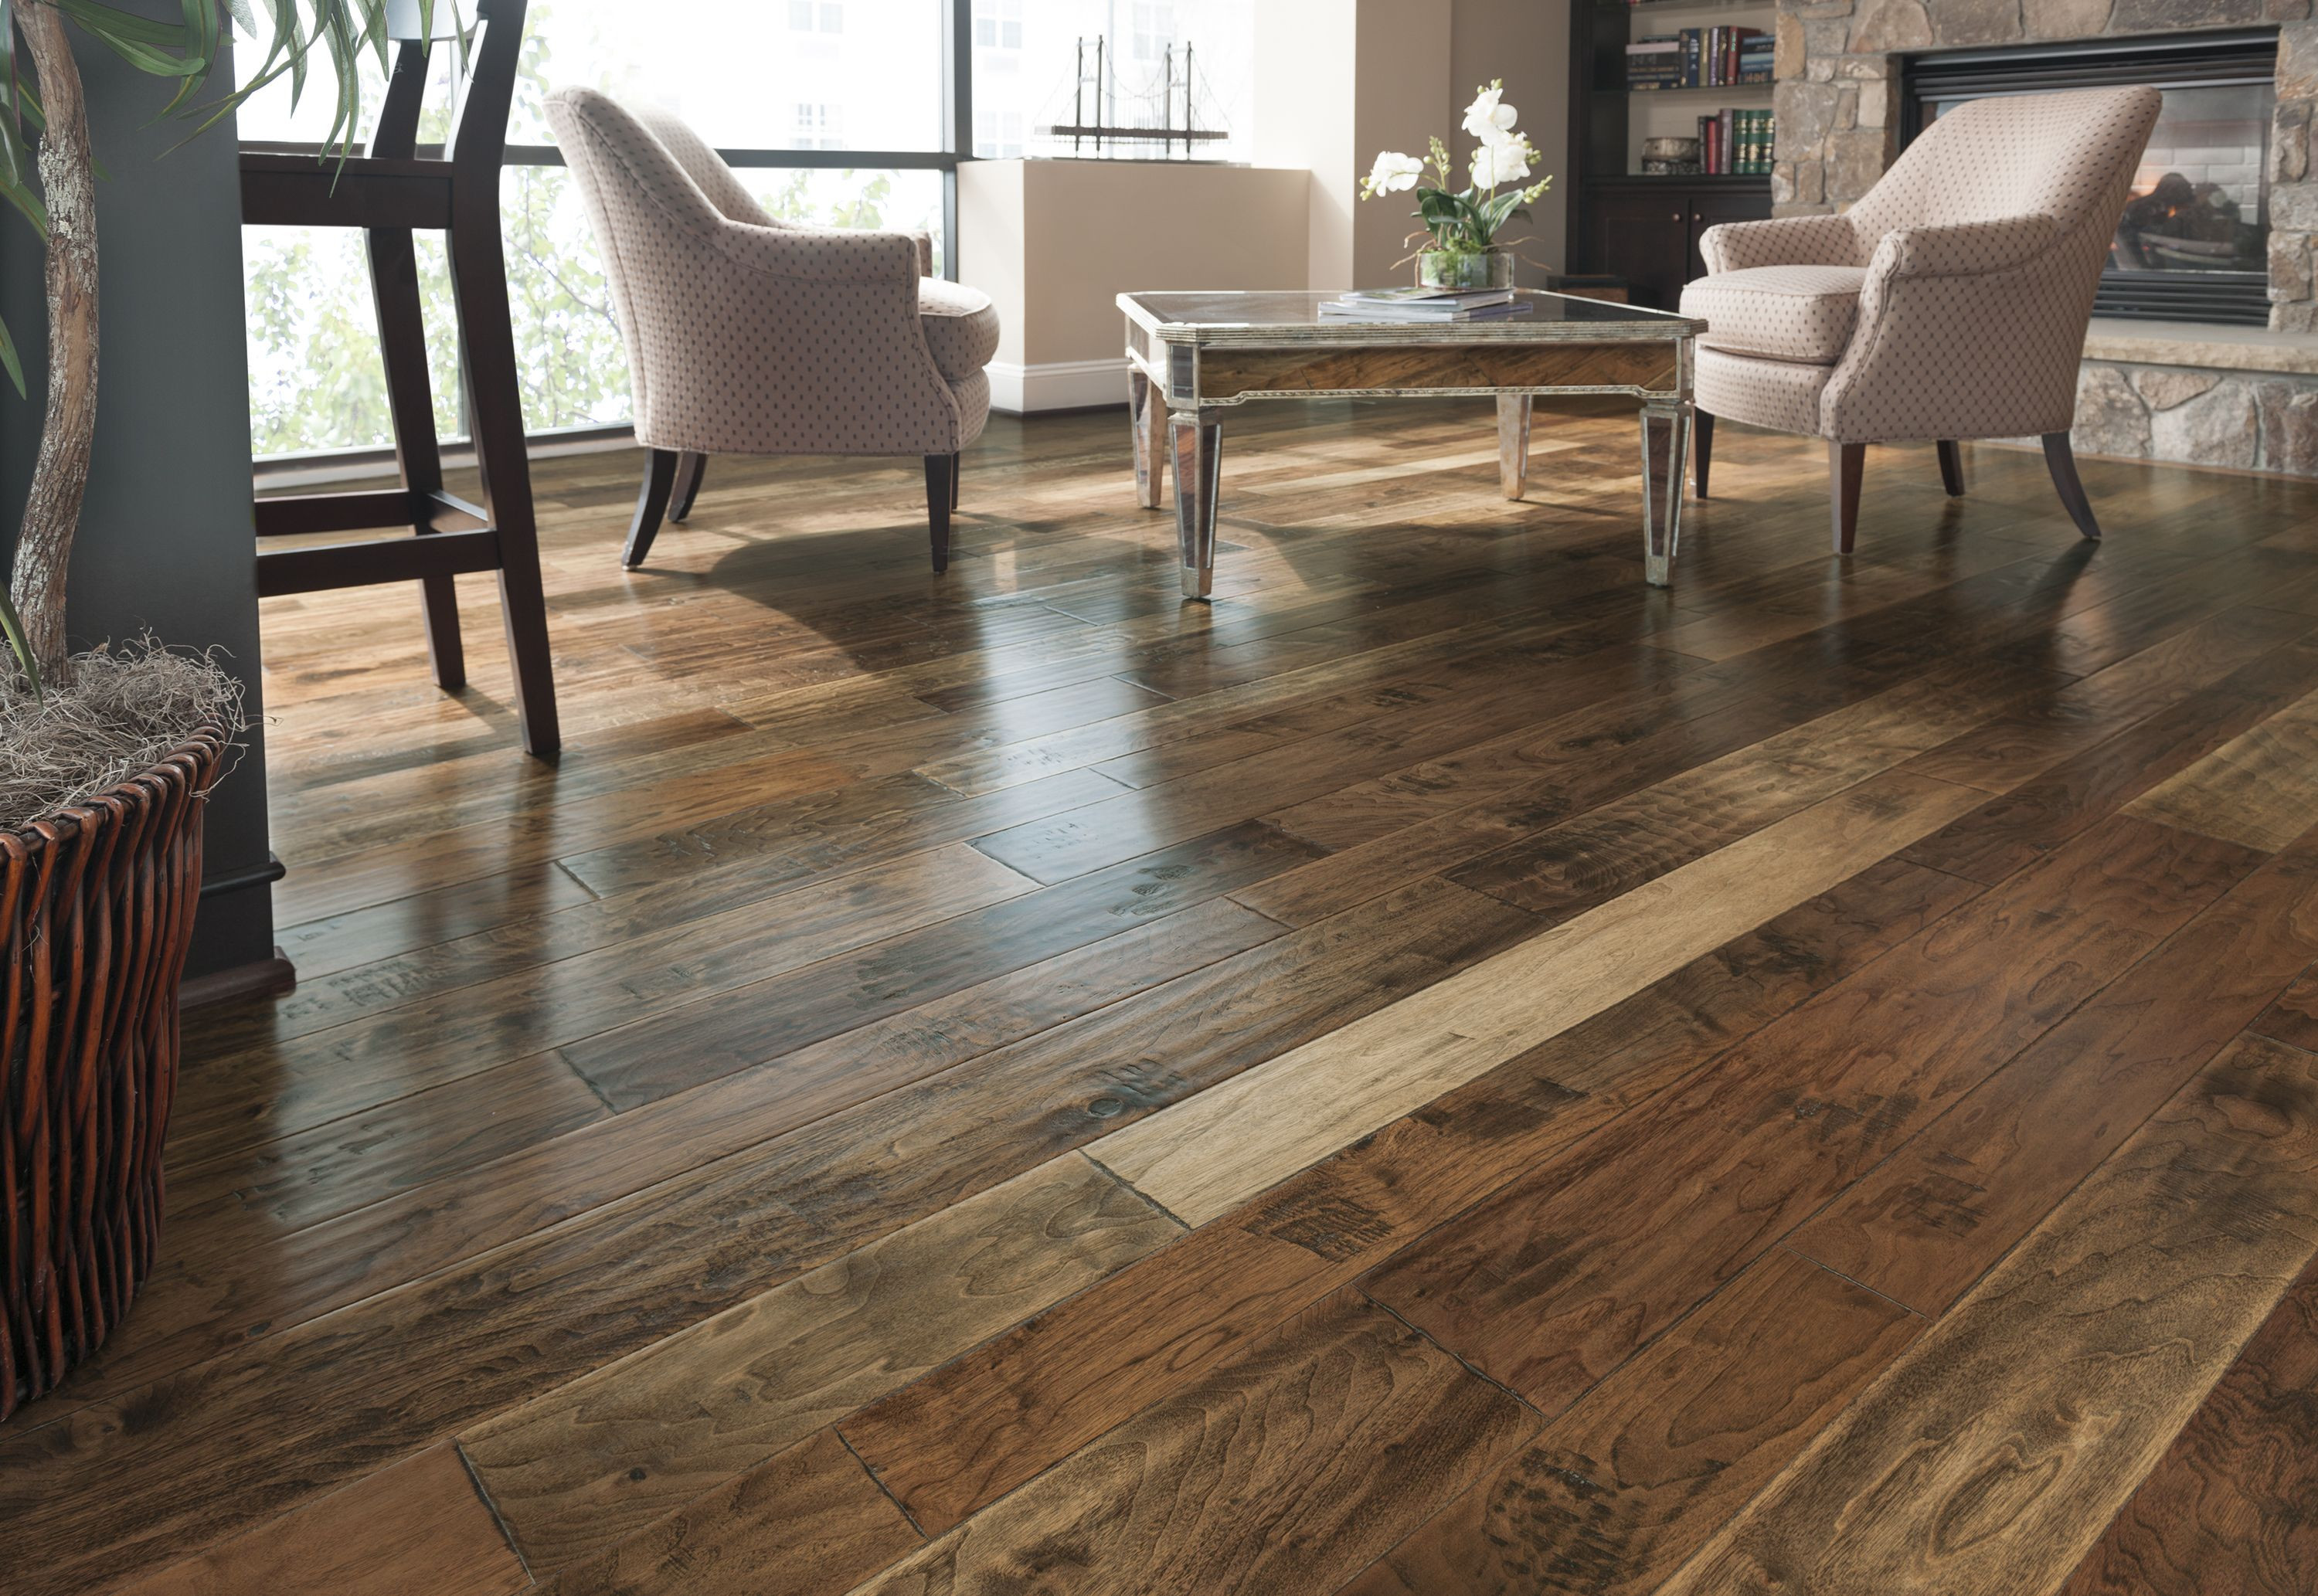 engineered oak hardwood flooring uk of hardwood flooring service floor plan ideas regarding hardwood flooring service toll brothers installed this fantastic wood floor in their chantilly